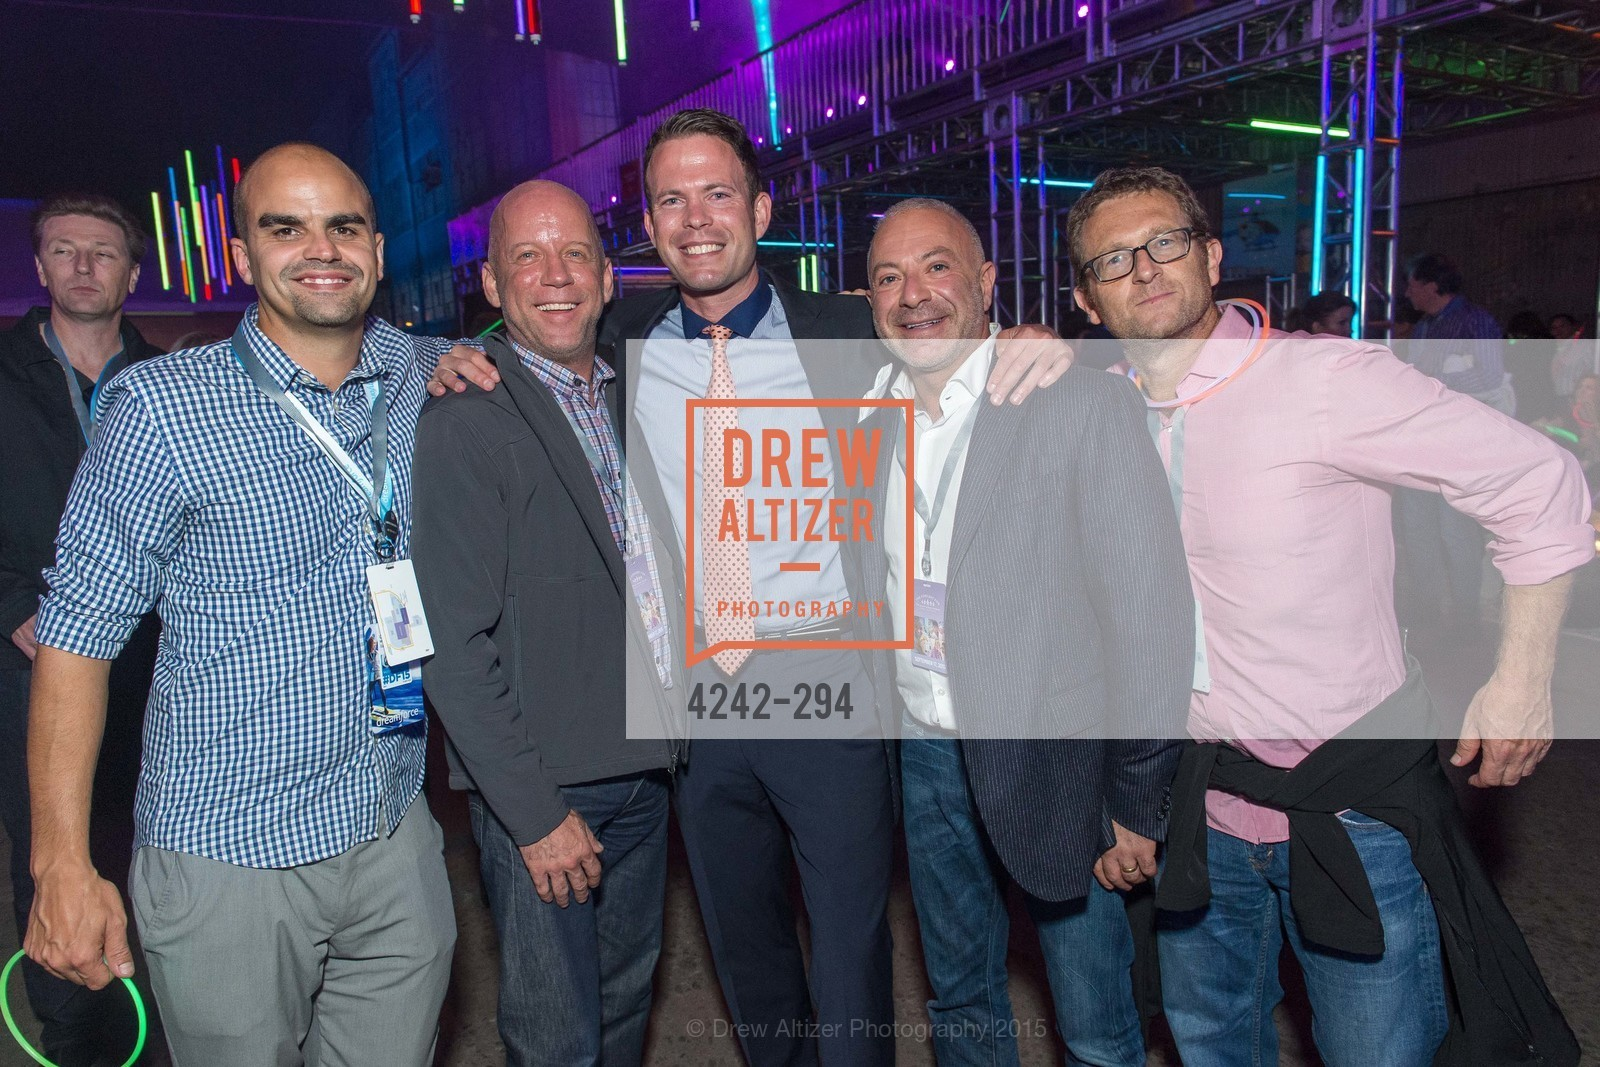 Chris Morris, Darrell Snyder, Michael Ward, The Concert For UCSF Benioff Children's Hospital, Pier 70, September 17th, 2015,Drew Altizer, Drew Altizer Photography, full-service agency, private events, San Francisco photographer, photographer california